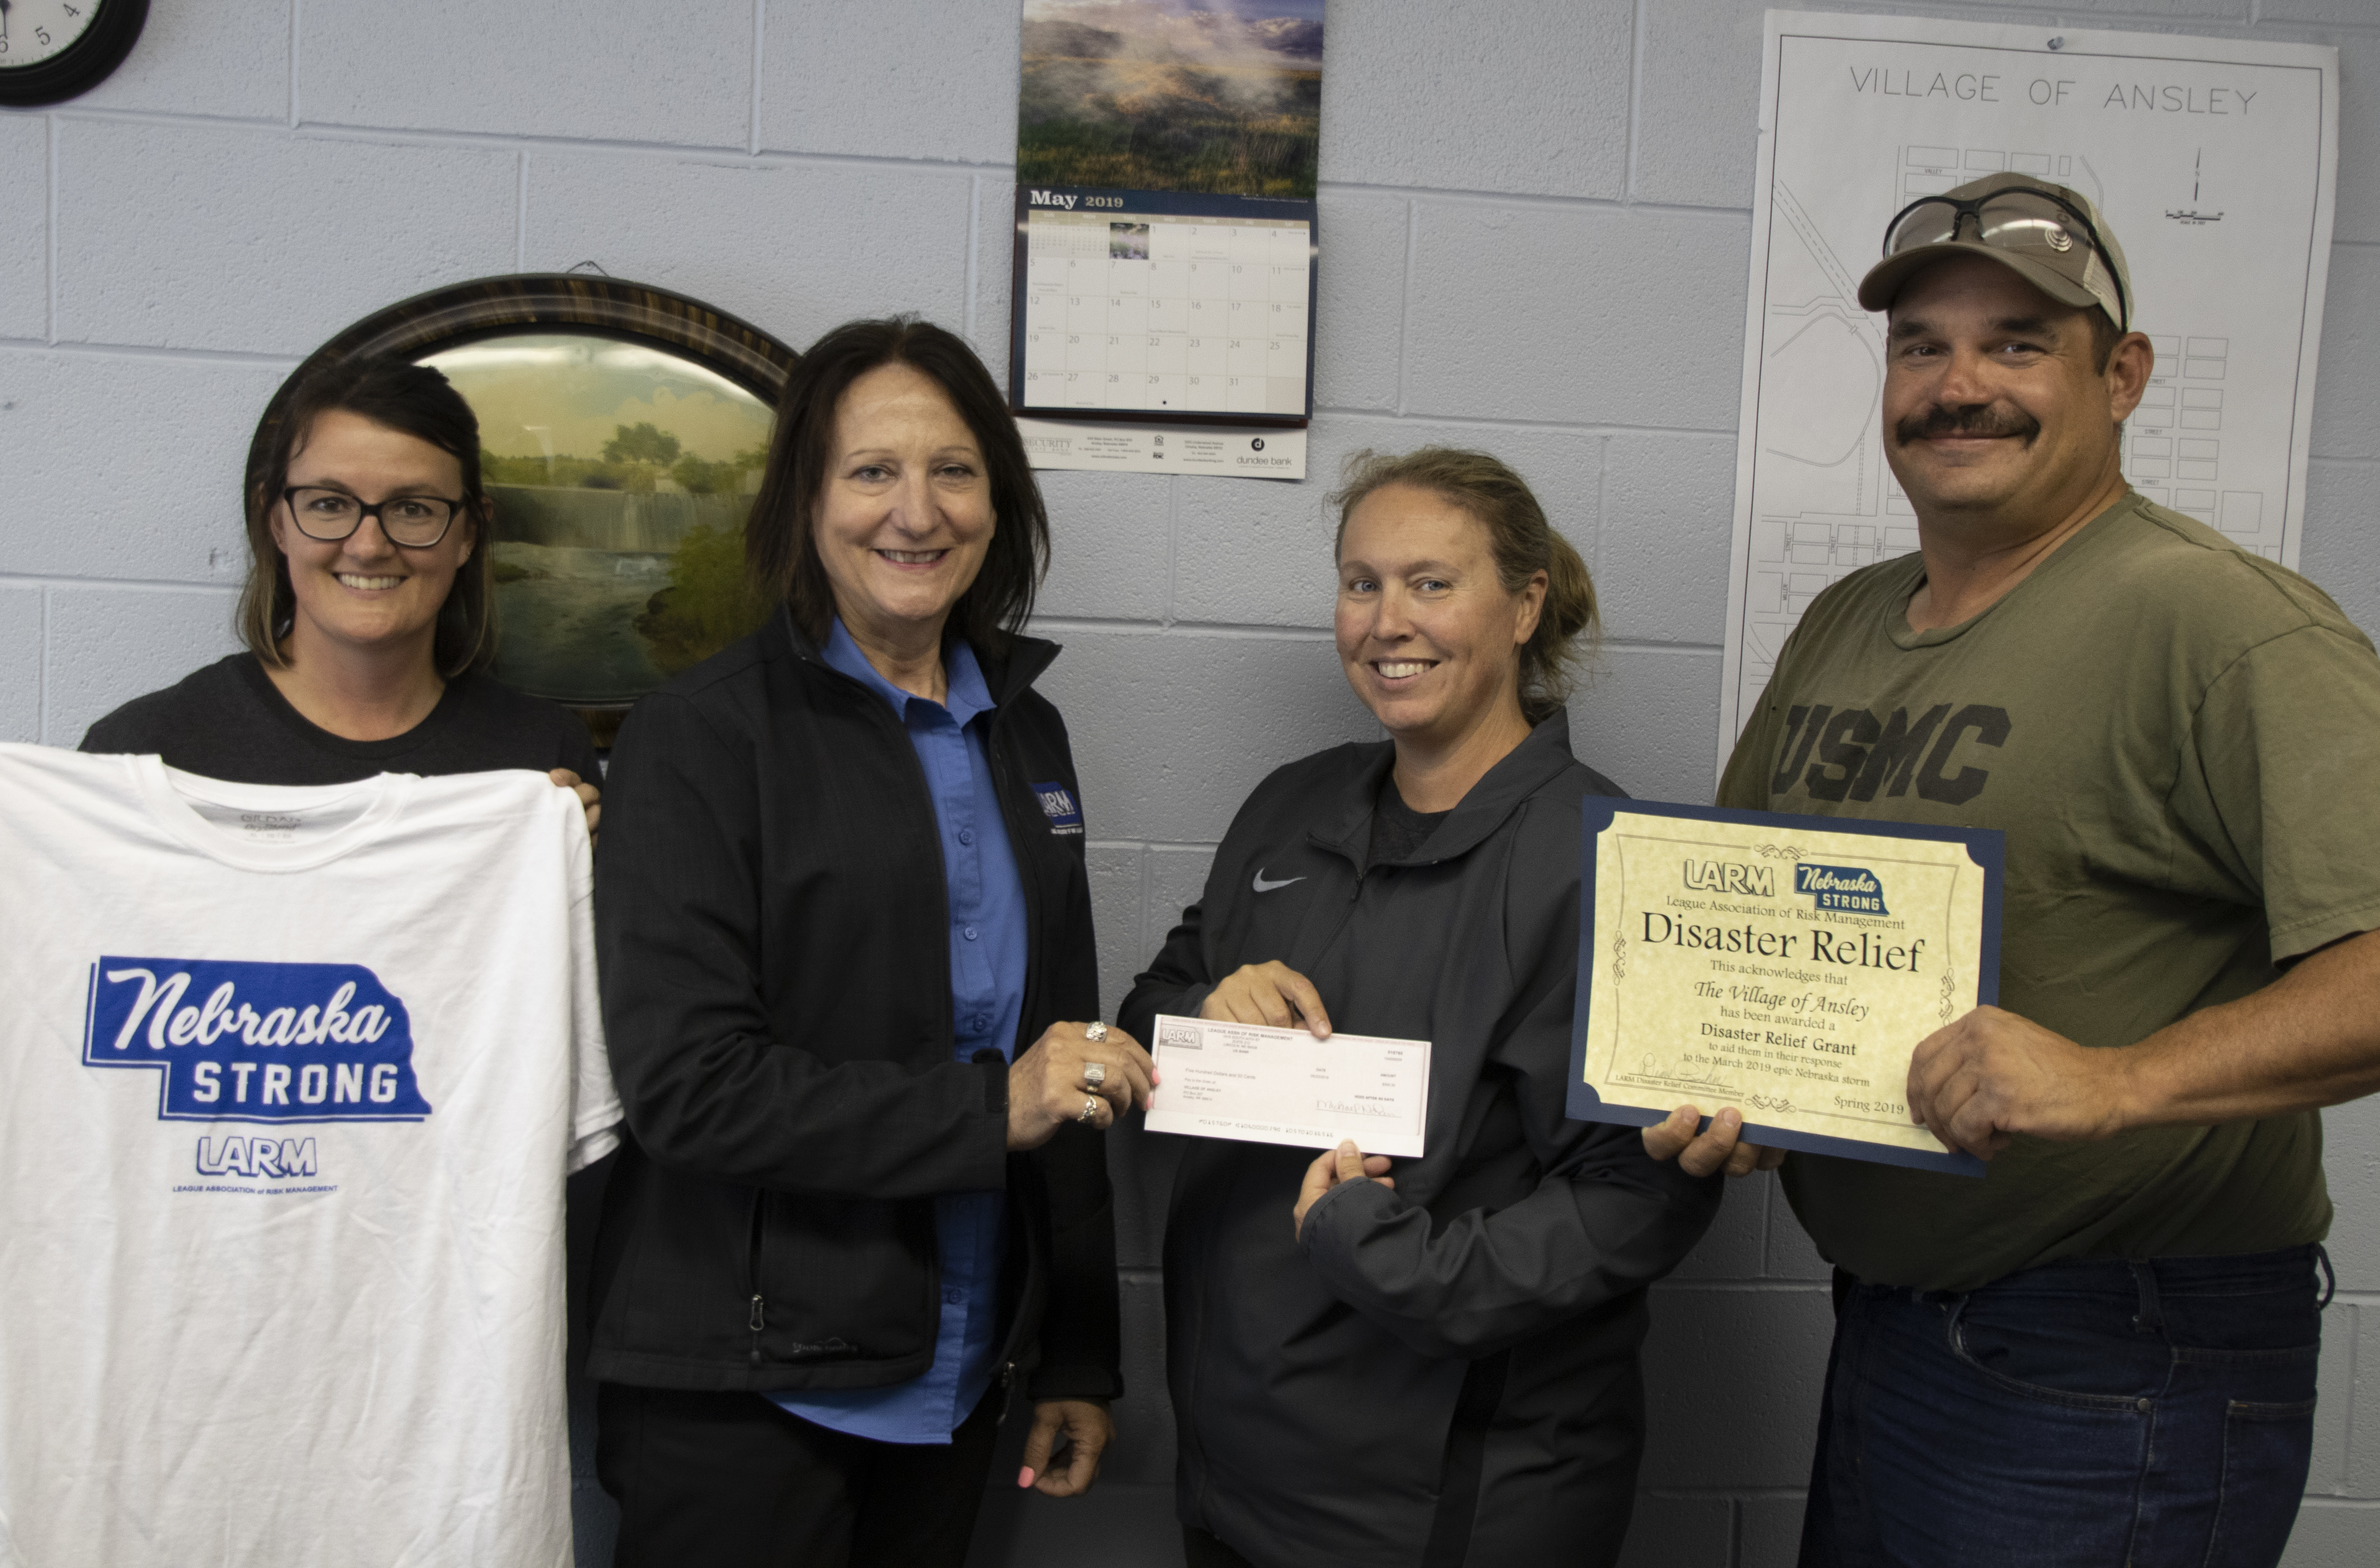 Ansley receives $500 in Disaster Assistance